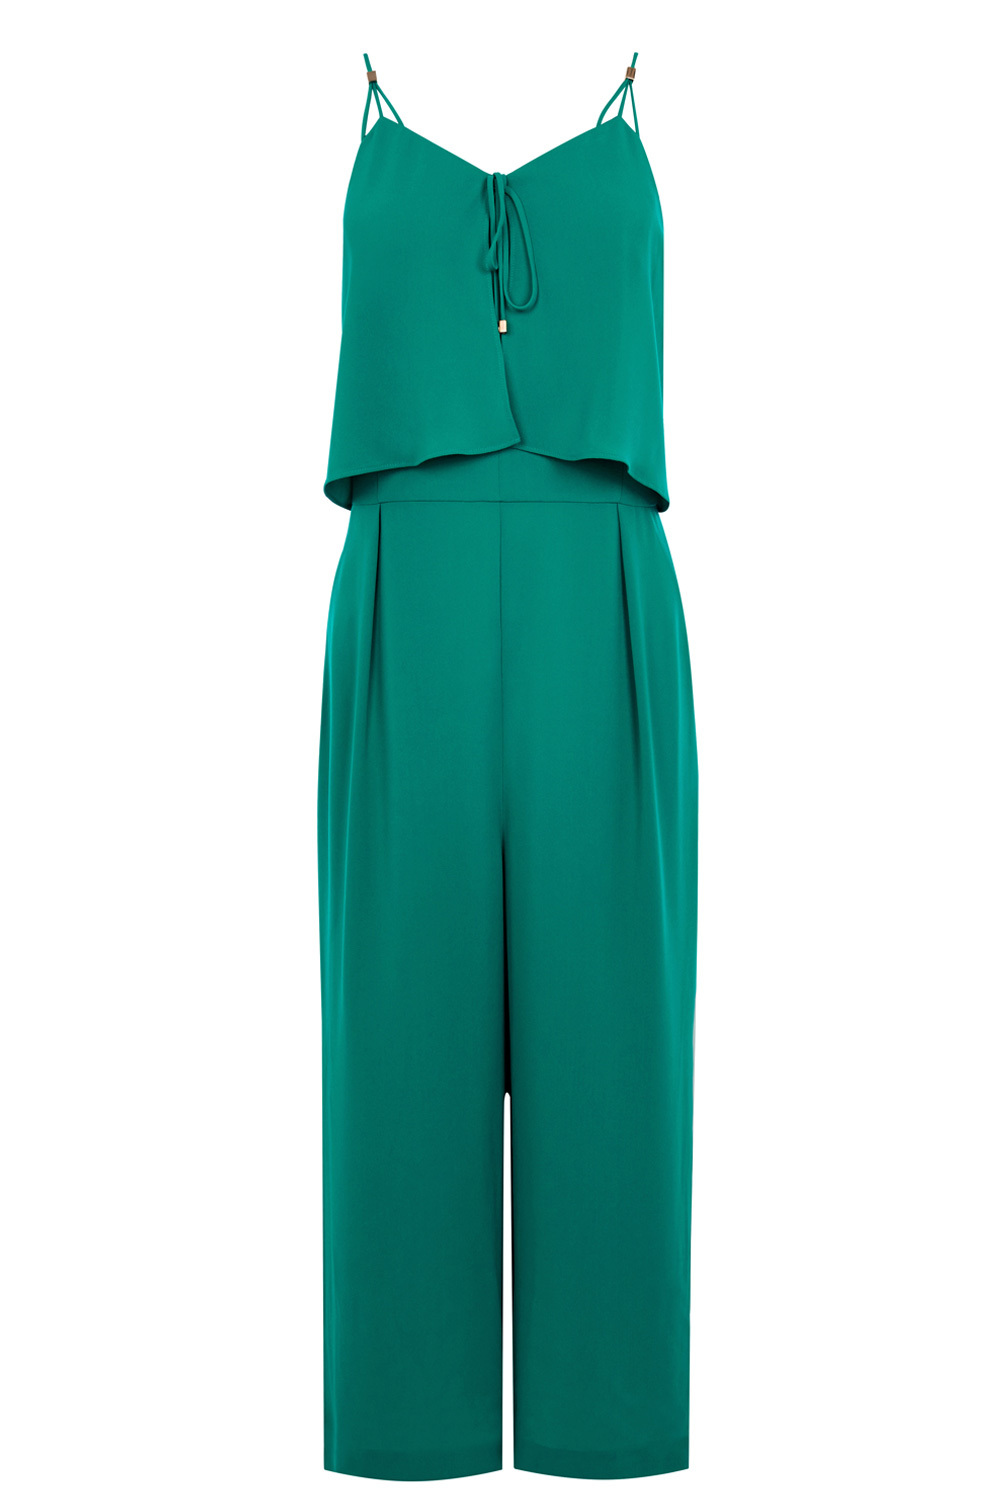 Dustina Jumpsuit - length: standard; neckline: v-neck; sleeve style: spaghetti straps; fit: fitted at waist; pattern: plain; predominant colour: emerald green; occasions: evening, occasion; fibres: polyester/polyamide - 100%; sleeve length: sleeveless; texture group: crepes; style: jumpsuit; pattern type: fabric; season: a/w 2016; wardrobe: event